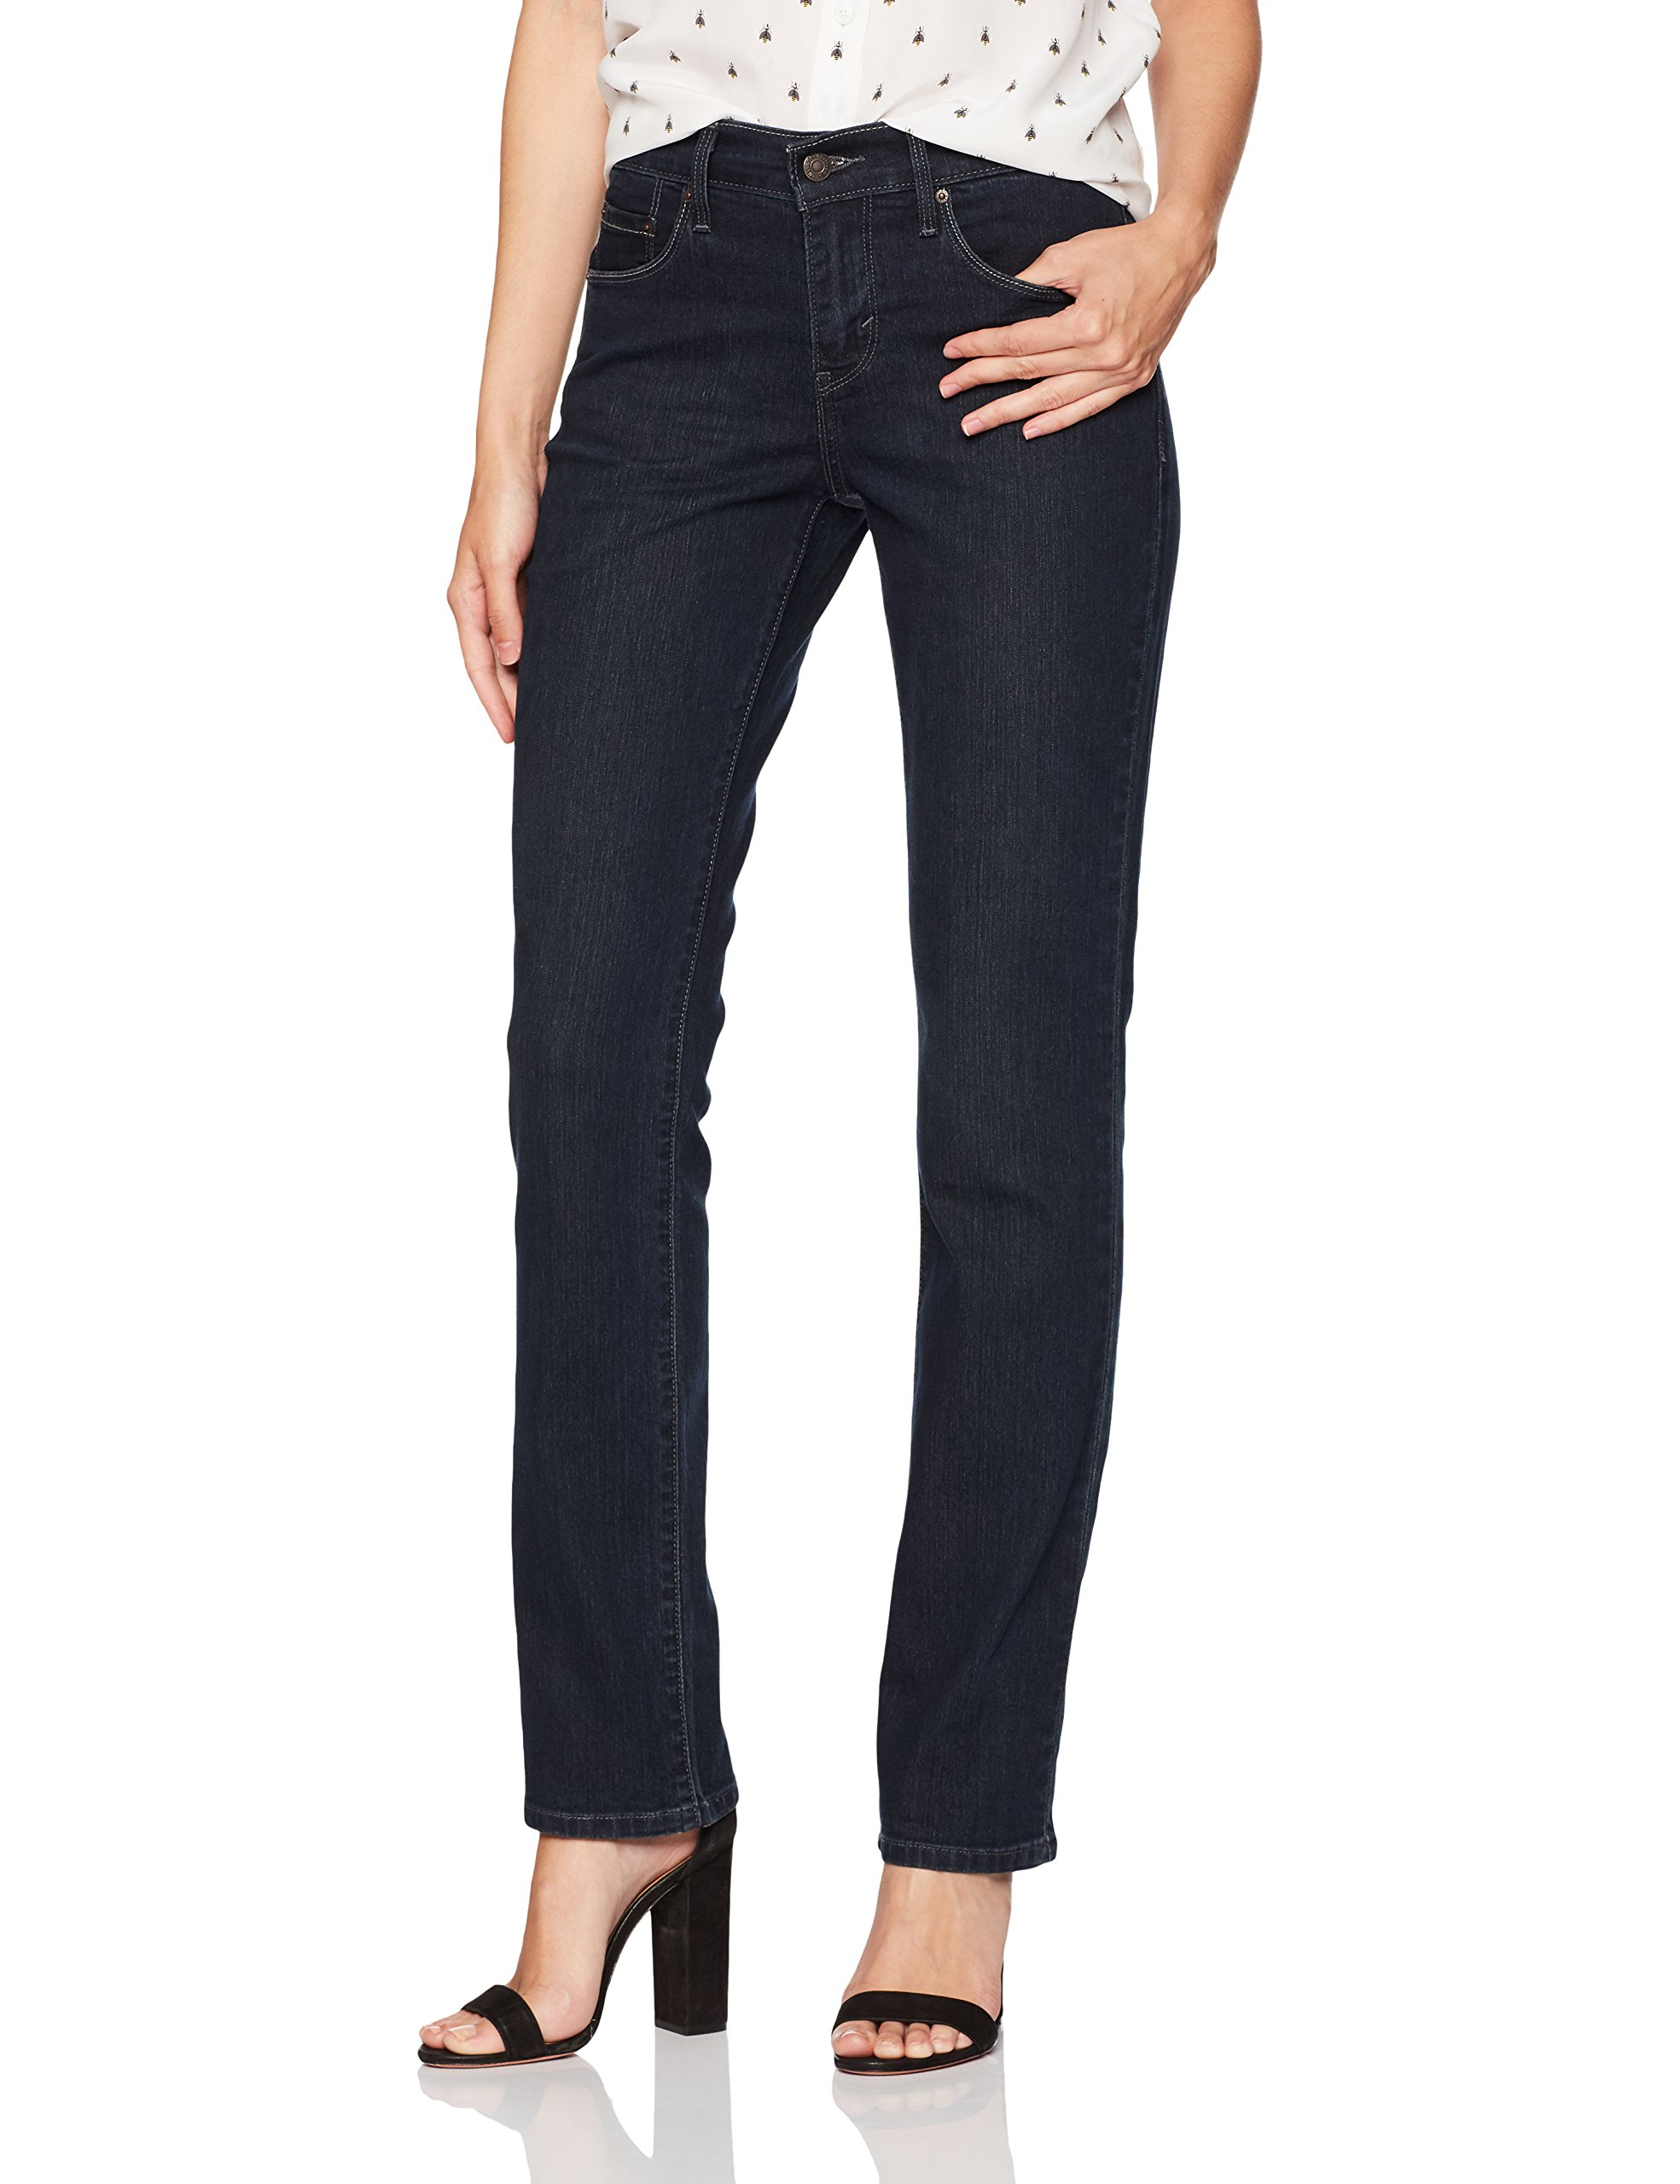 Levi's Women's 505 Straight-Leg Jean, Immersion, 29/8 Short